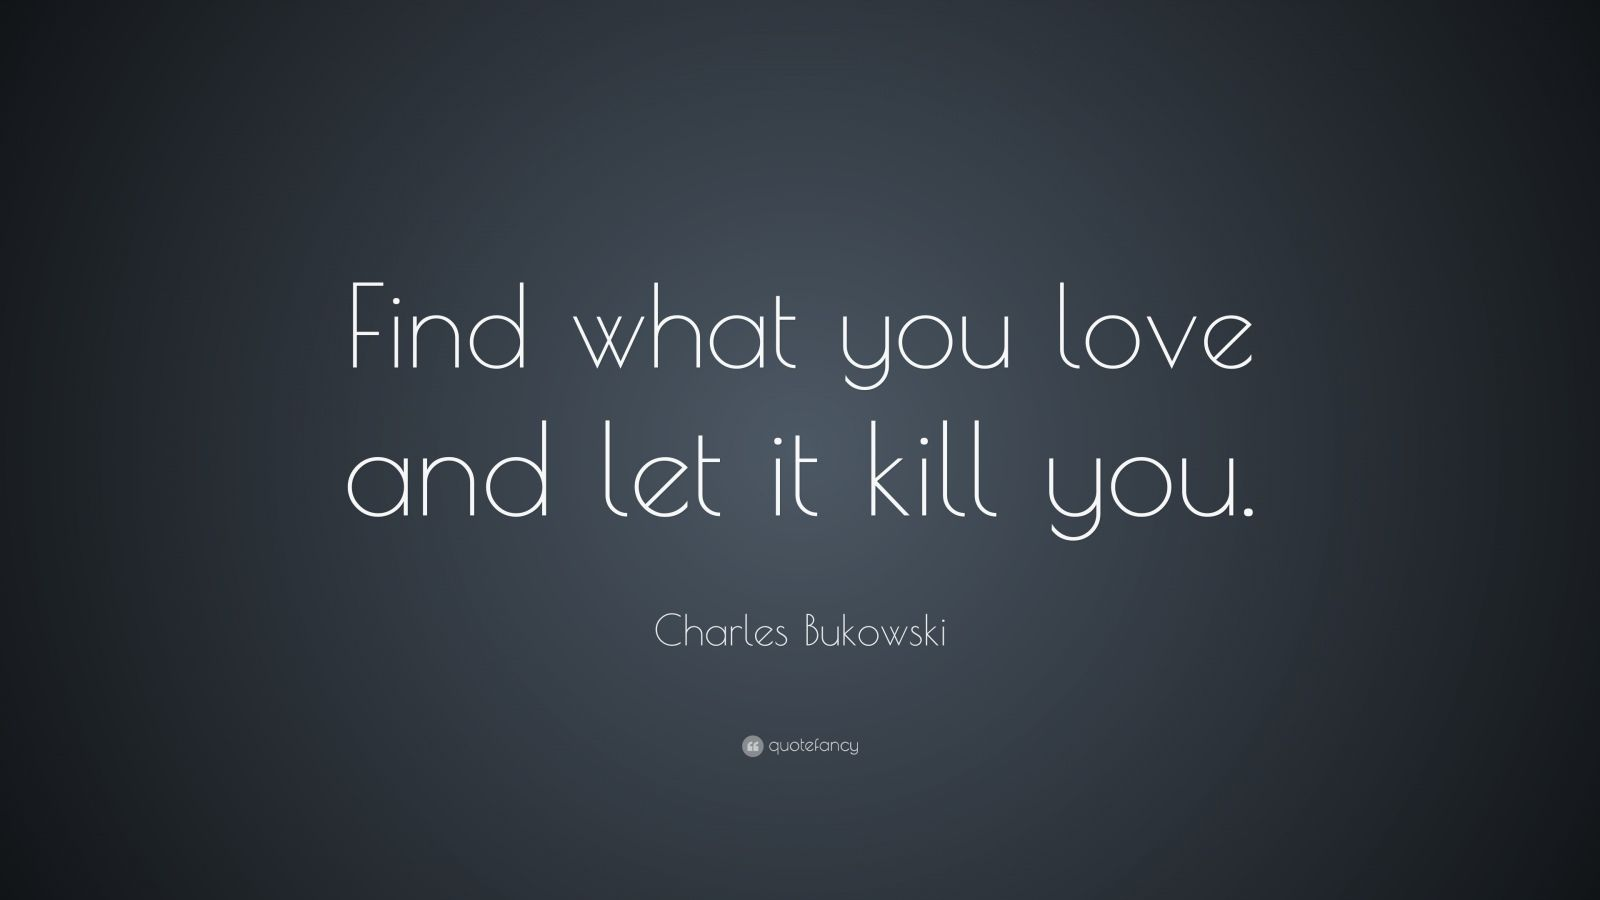 Quotes About Love Killing You : Charles Bukowski Quote: ?Find what you love and let it kill you.?